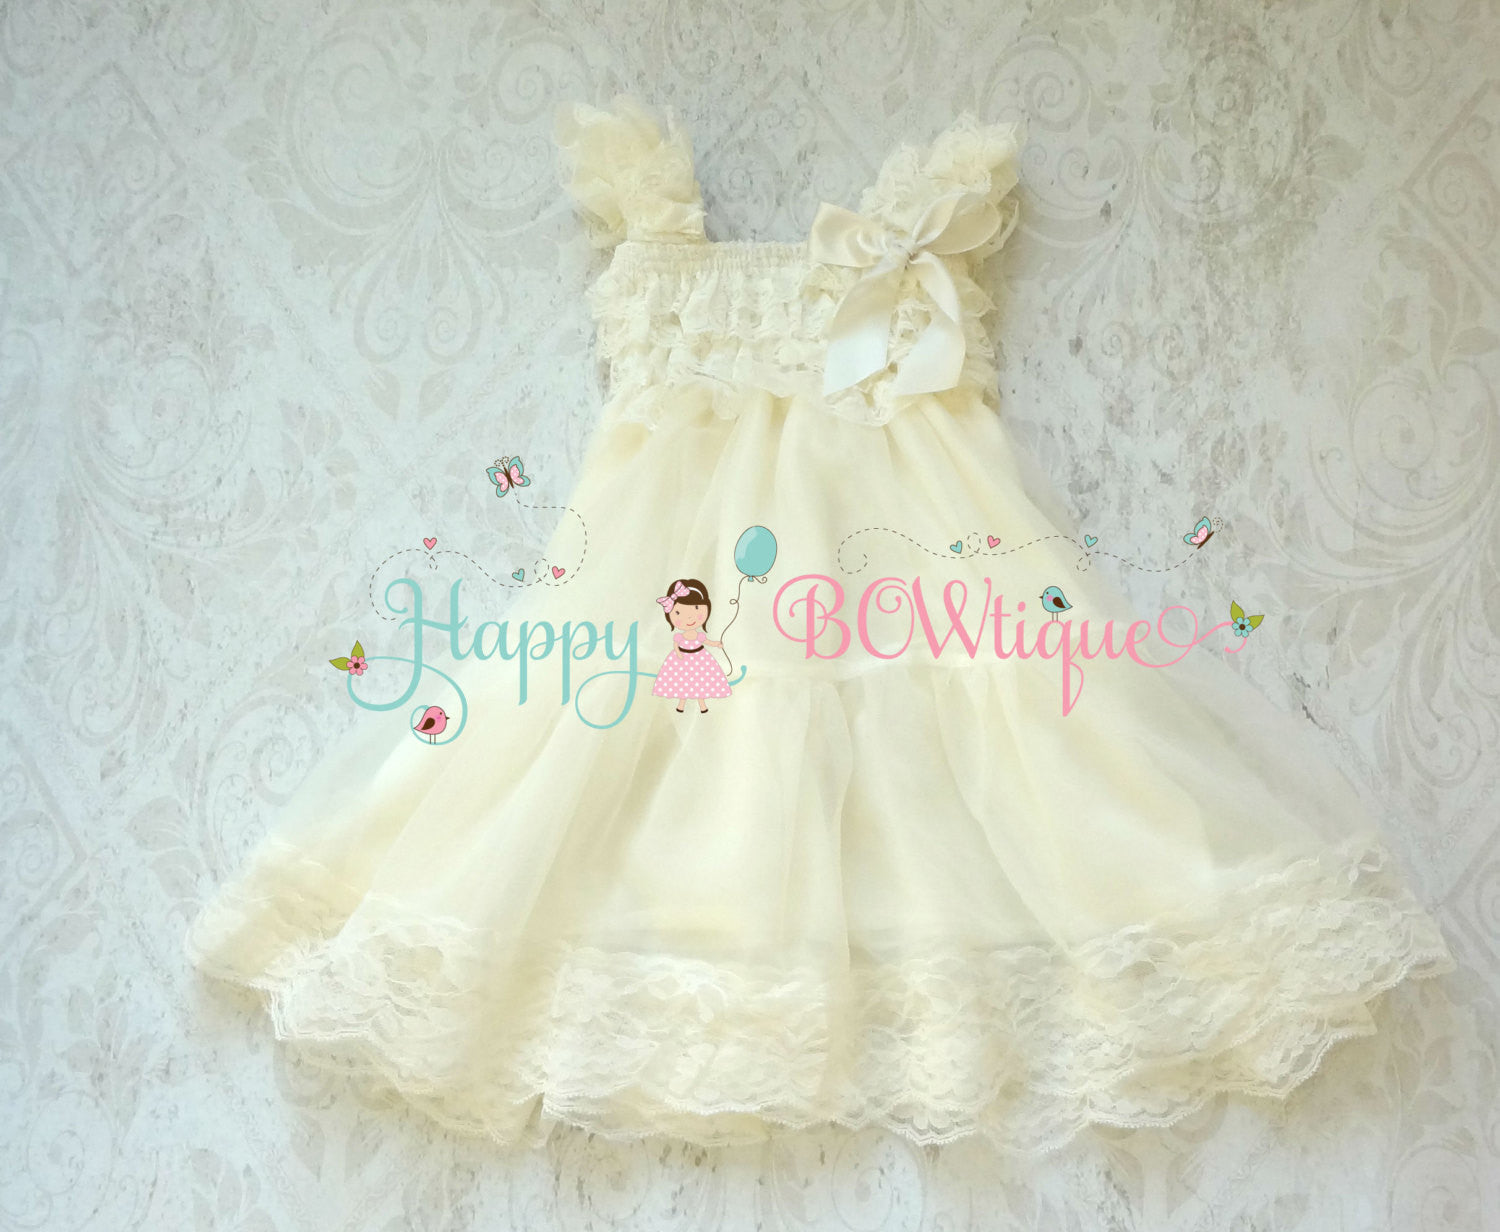 Flower Girl Dress/ Girl's Ivory Champage Flower Chiffon Lace Dress set - Happy BOWtique - children's clothing, Baby Girl clothing